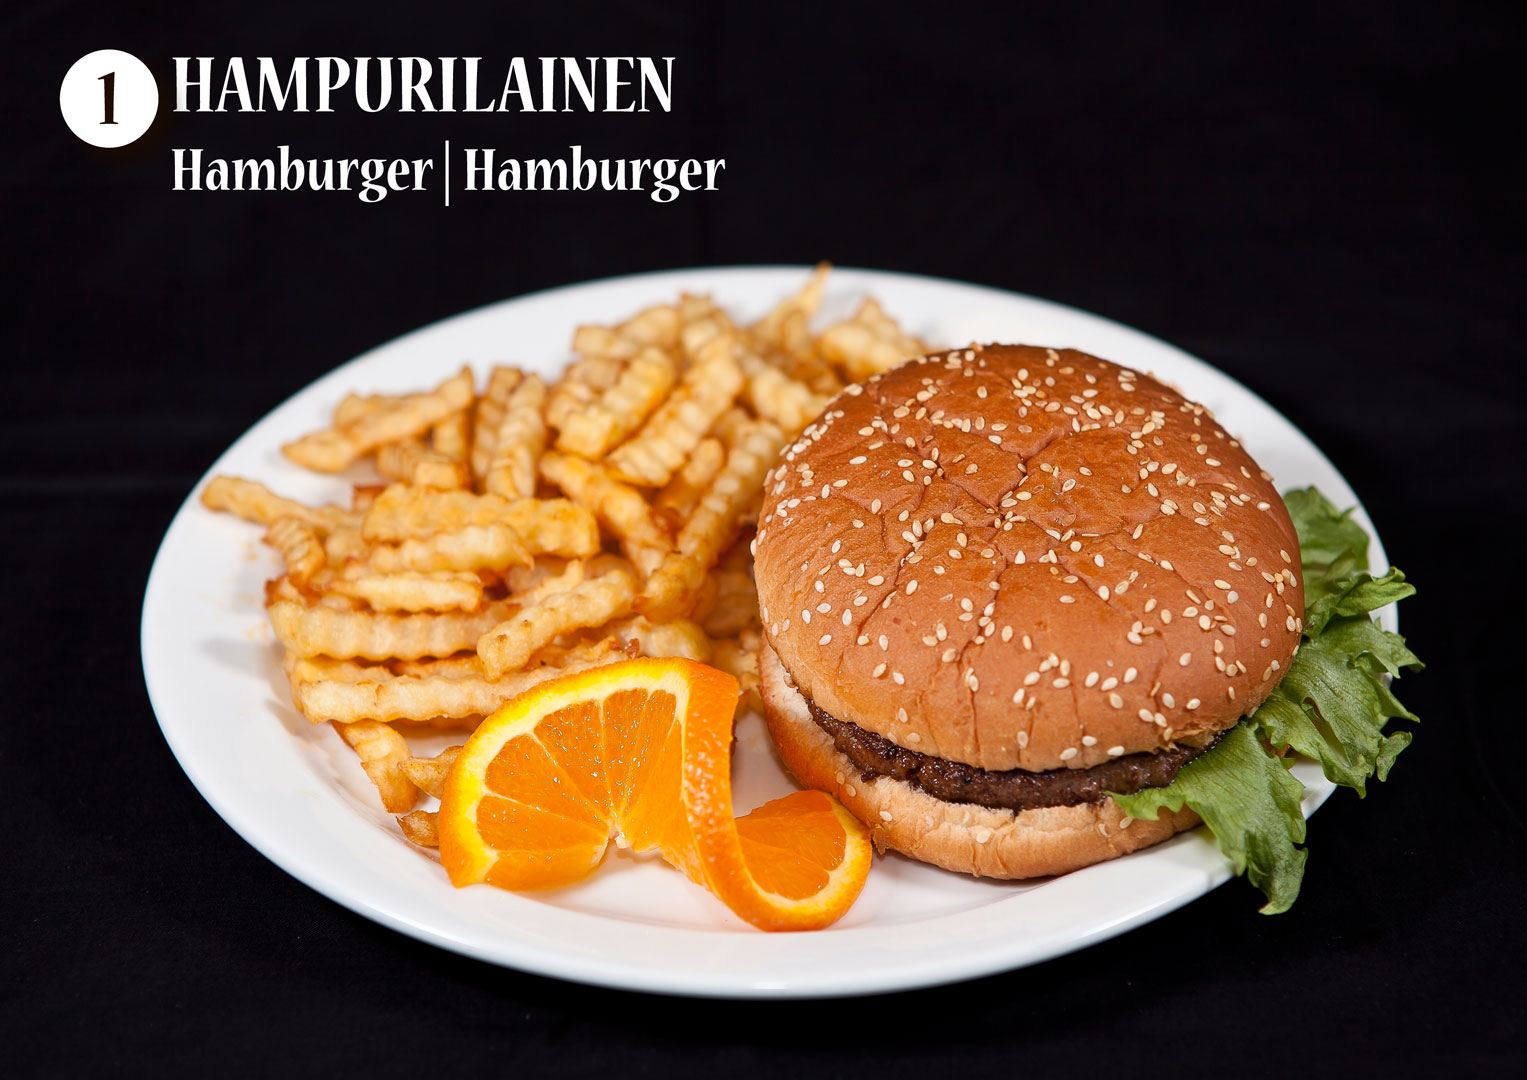 Hampurilainen | Hamburger | Hamburger